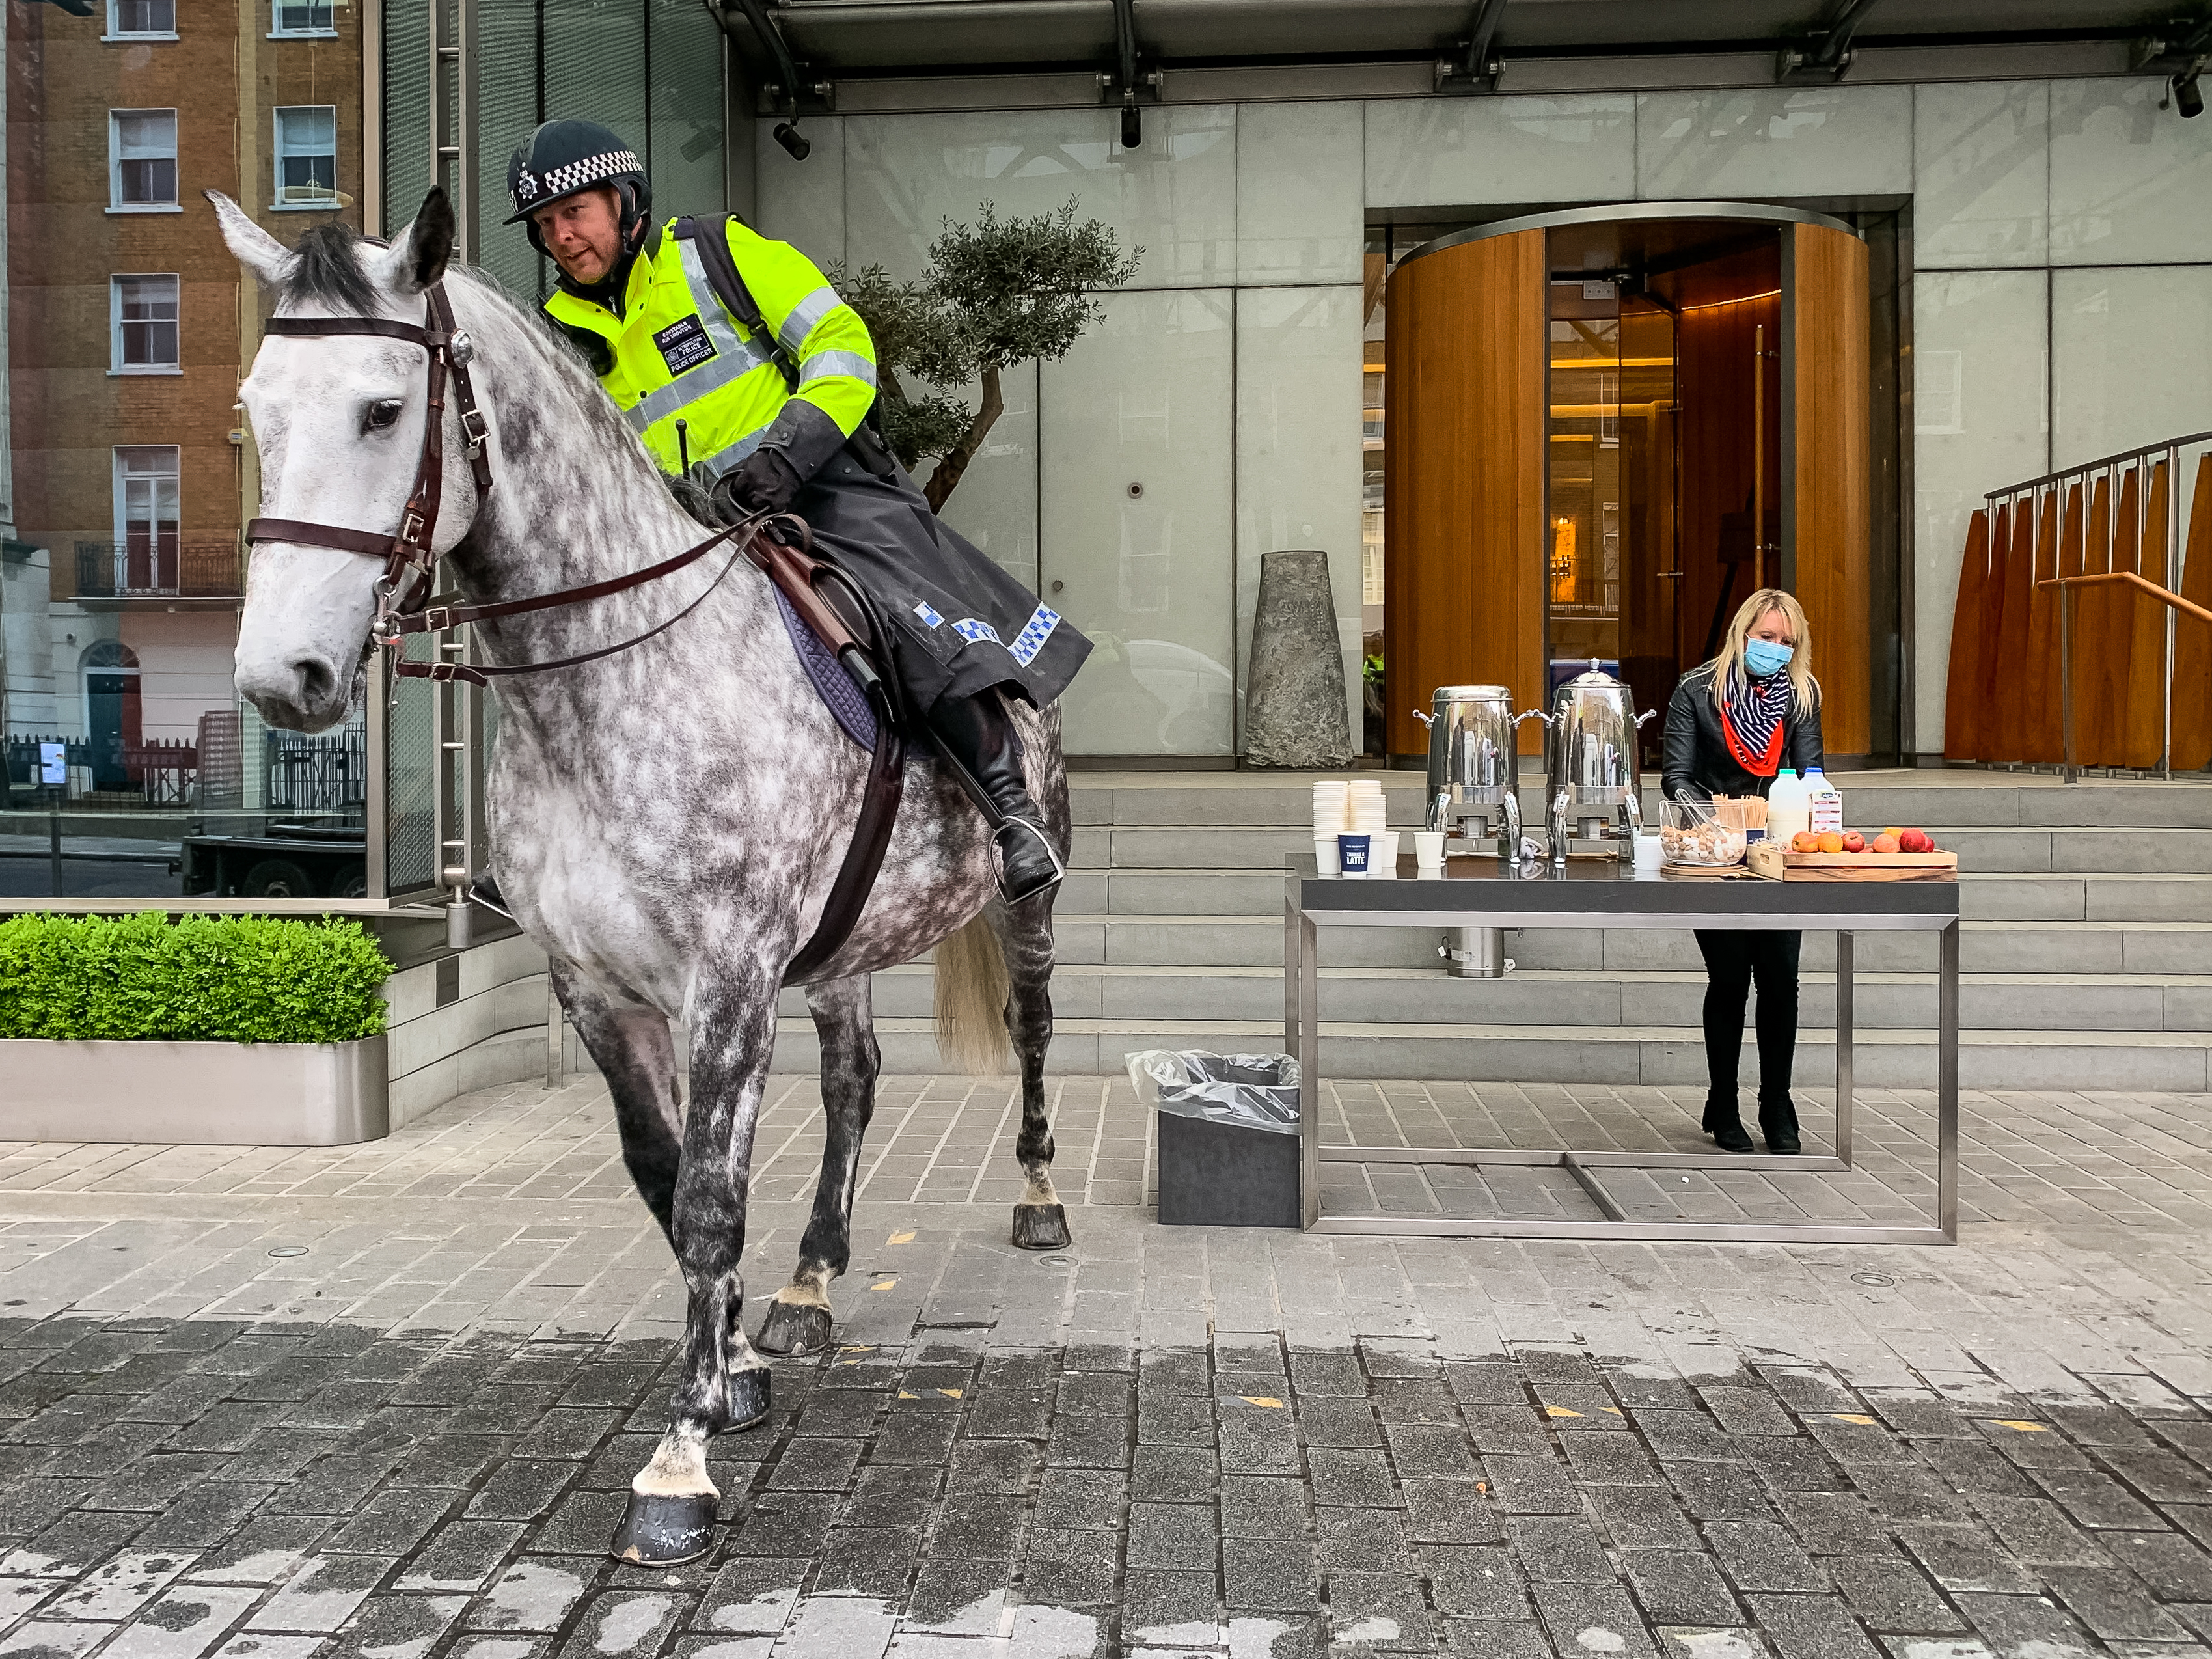 A police horse arrives at a free drive-through for the emergency services at The Berkeley Hotel as the UK continues in lockdown to help curb the spread of the coronavirus.